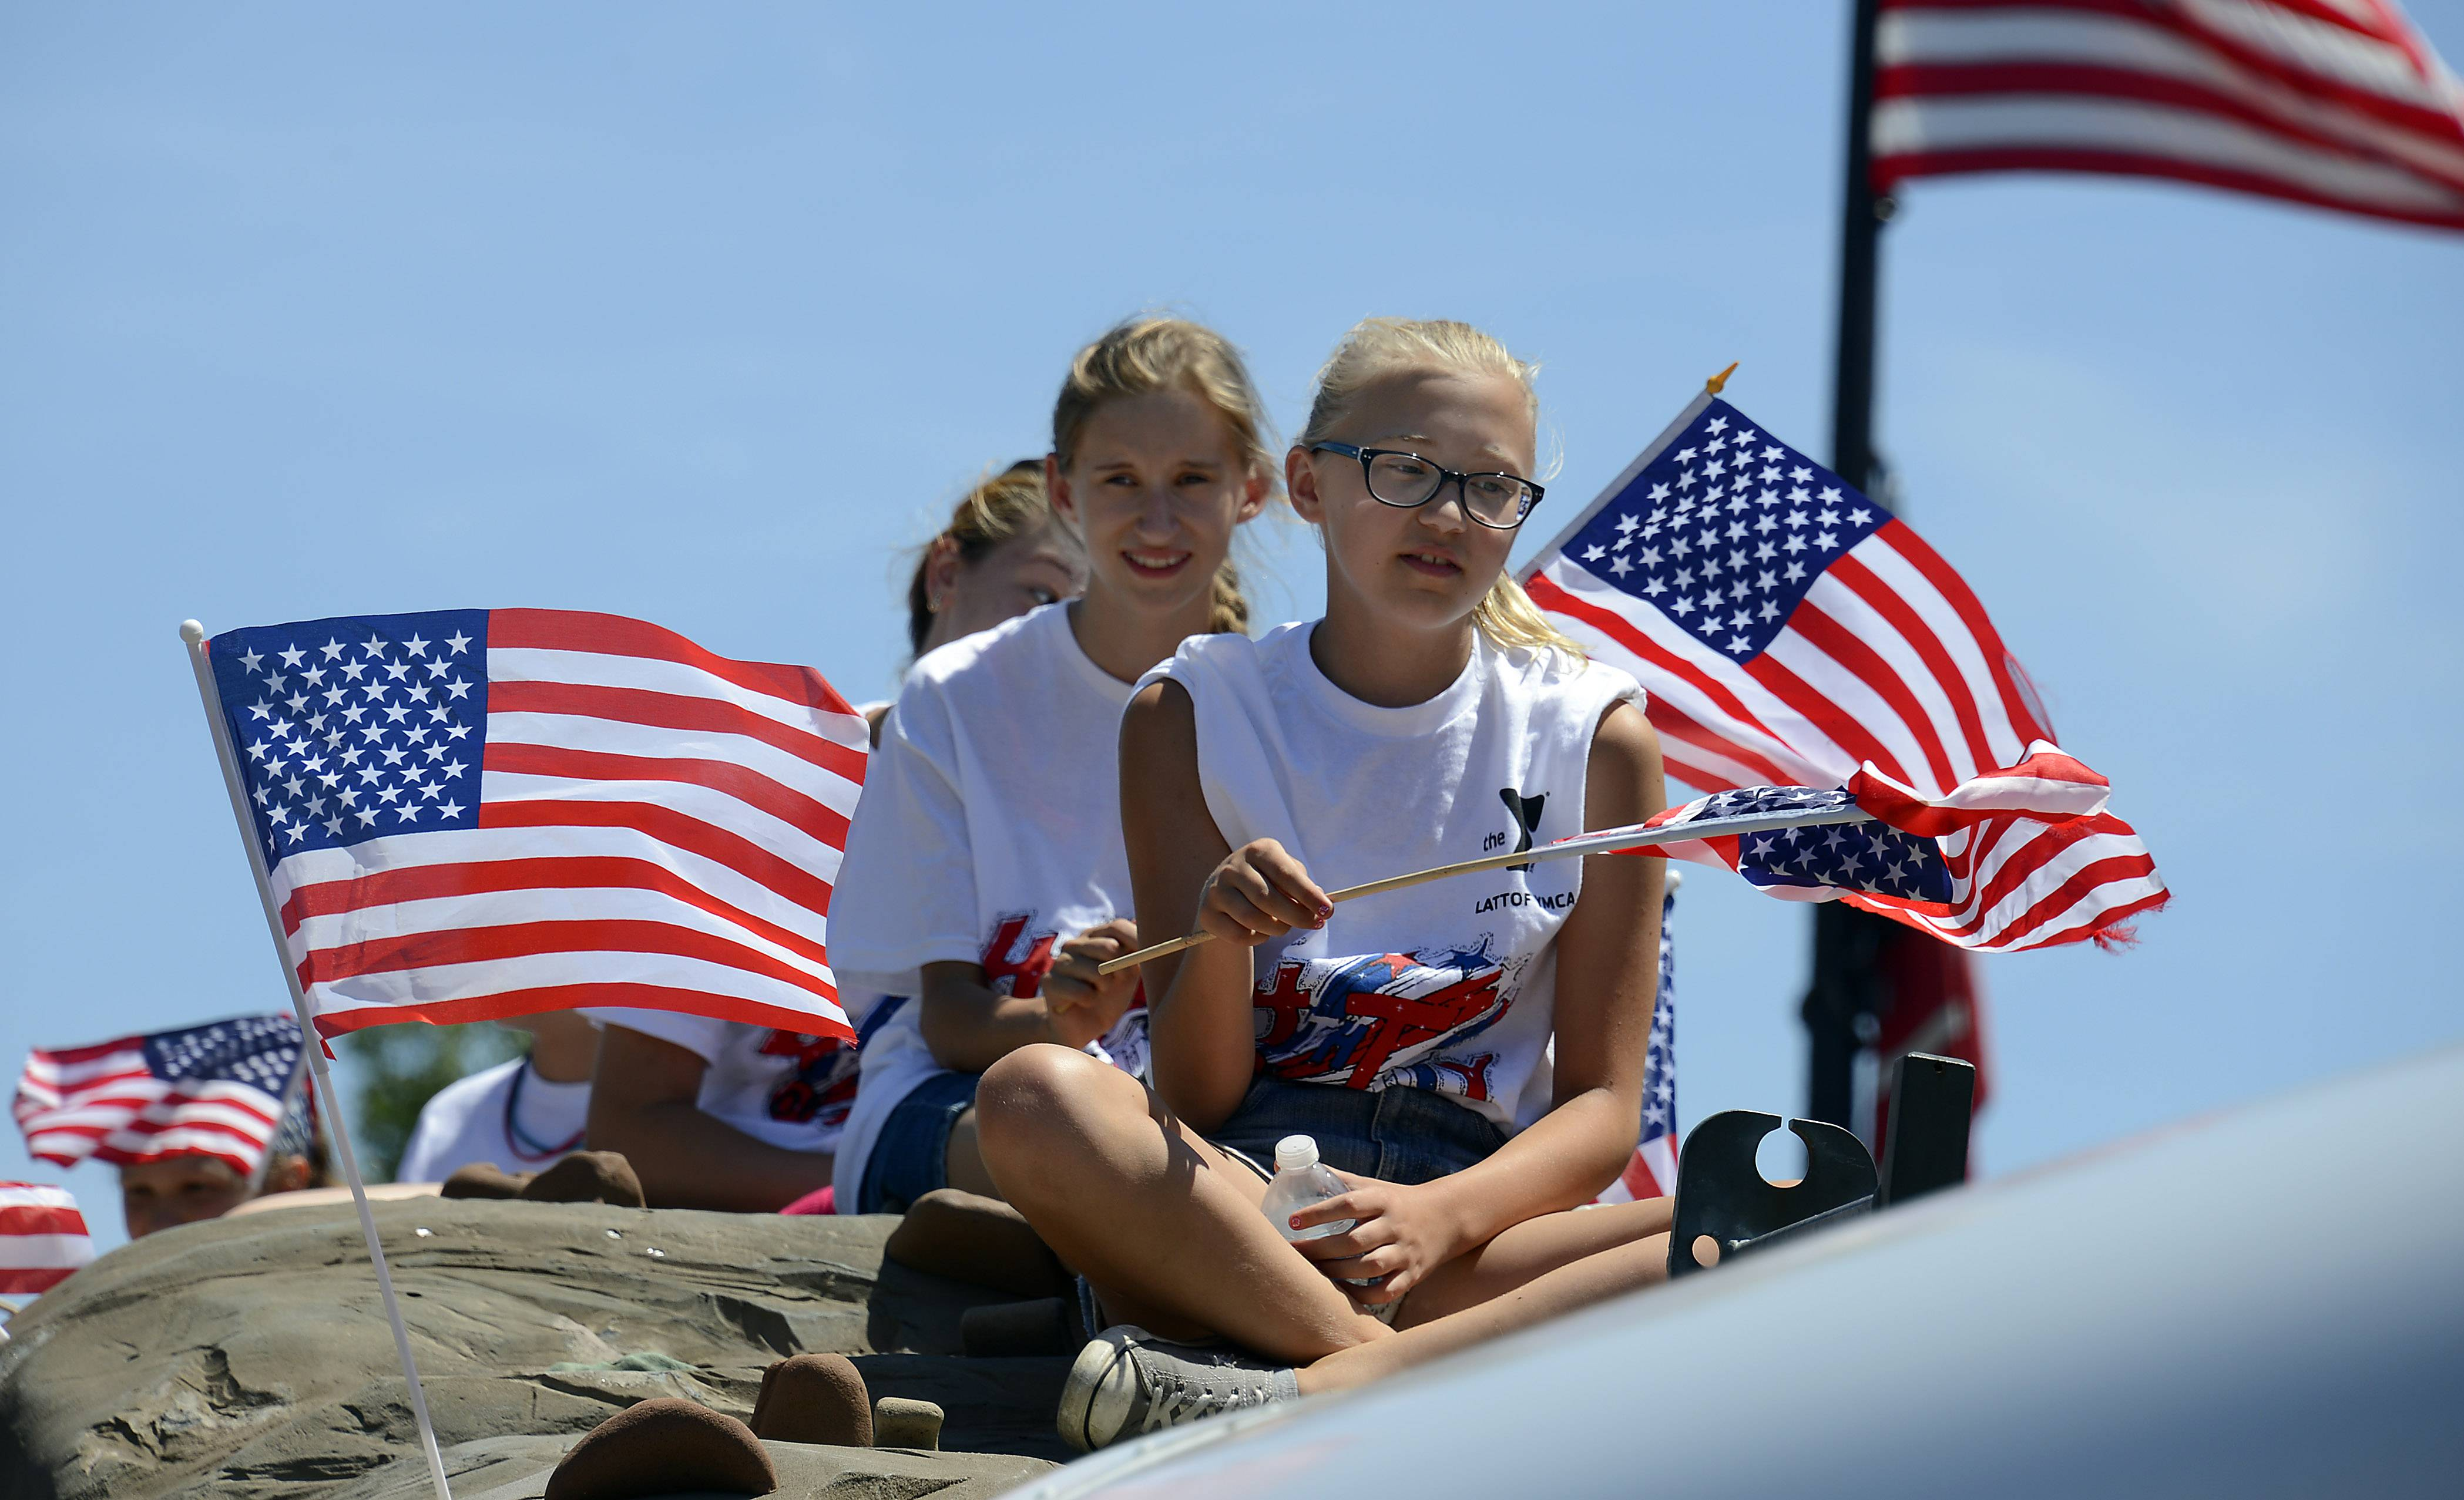 Marion Bensing, 12, of Arlington Heights rides the float for Lattof YMCA  during the Mount Prospect parade.